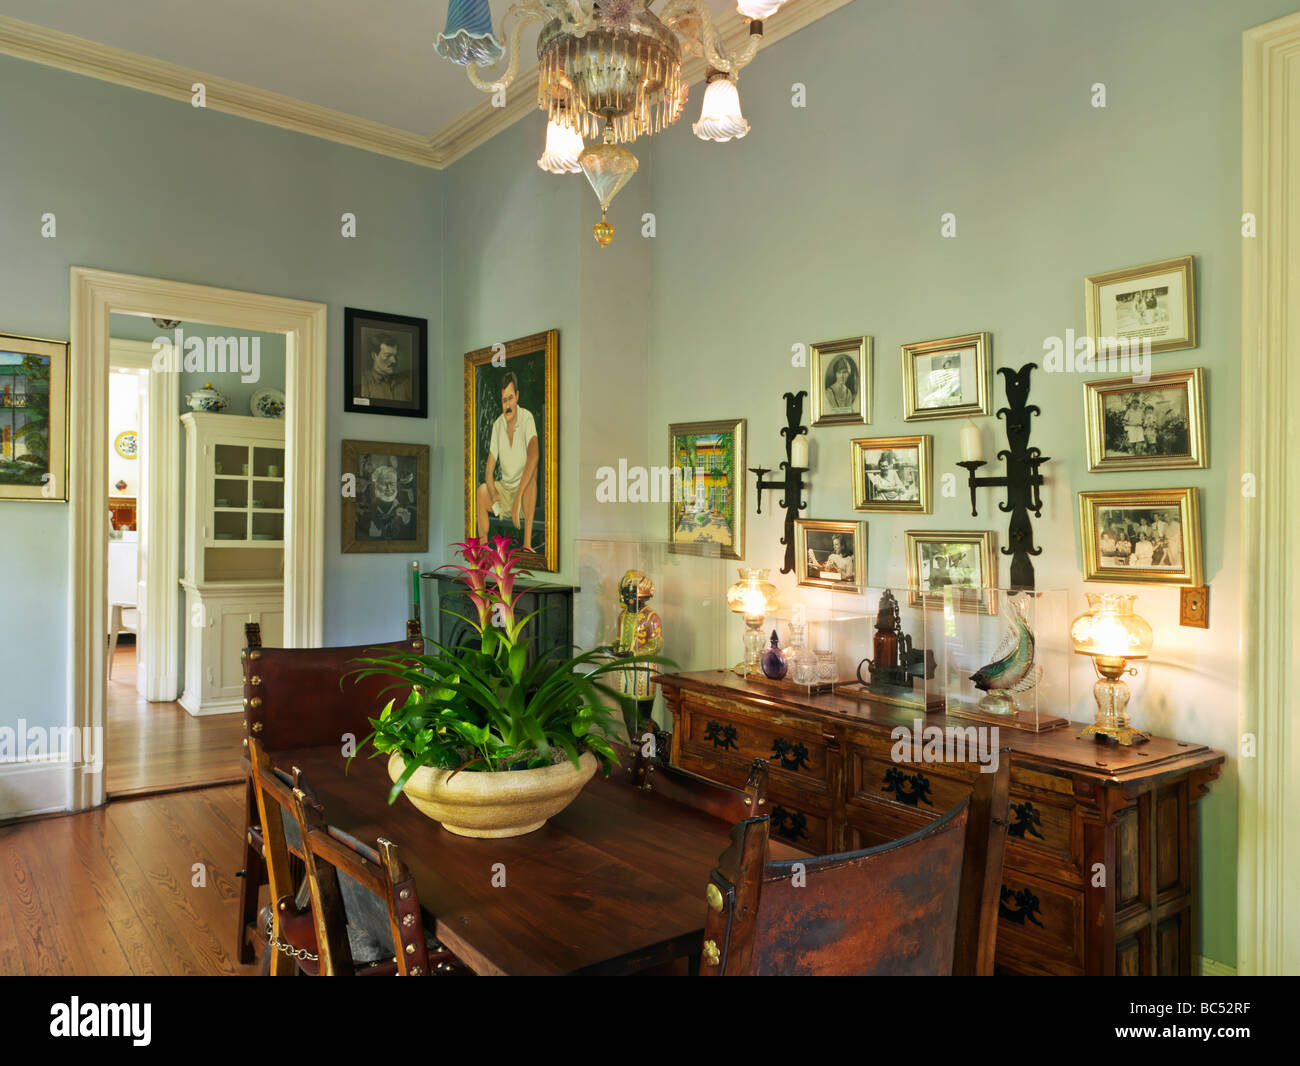 Ernest Hemingway House In Key West Dining Room Stock Photo